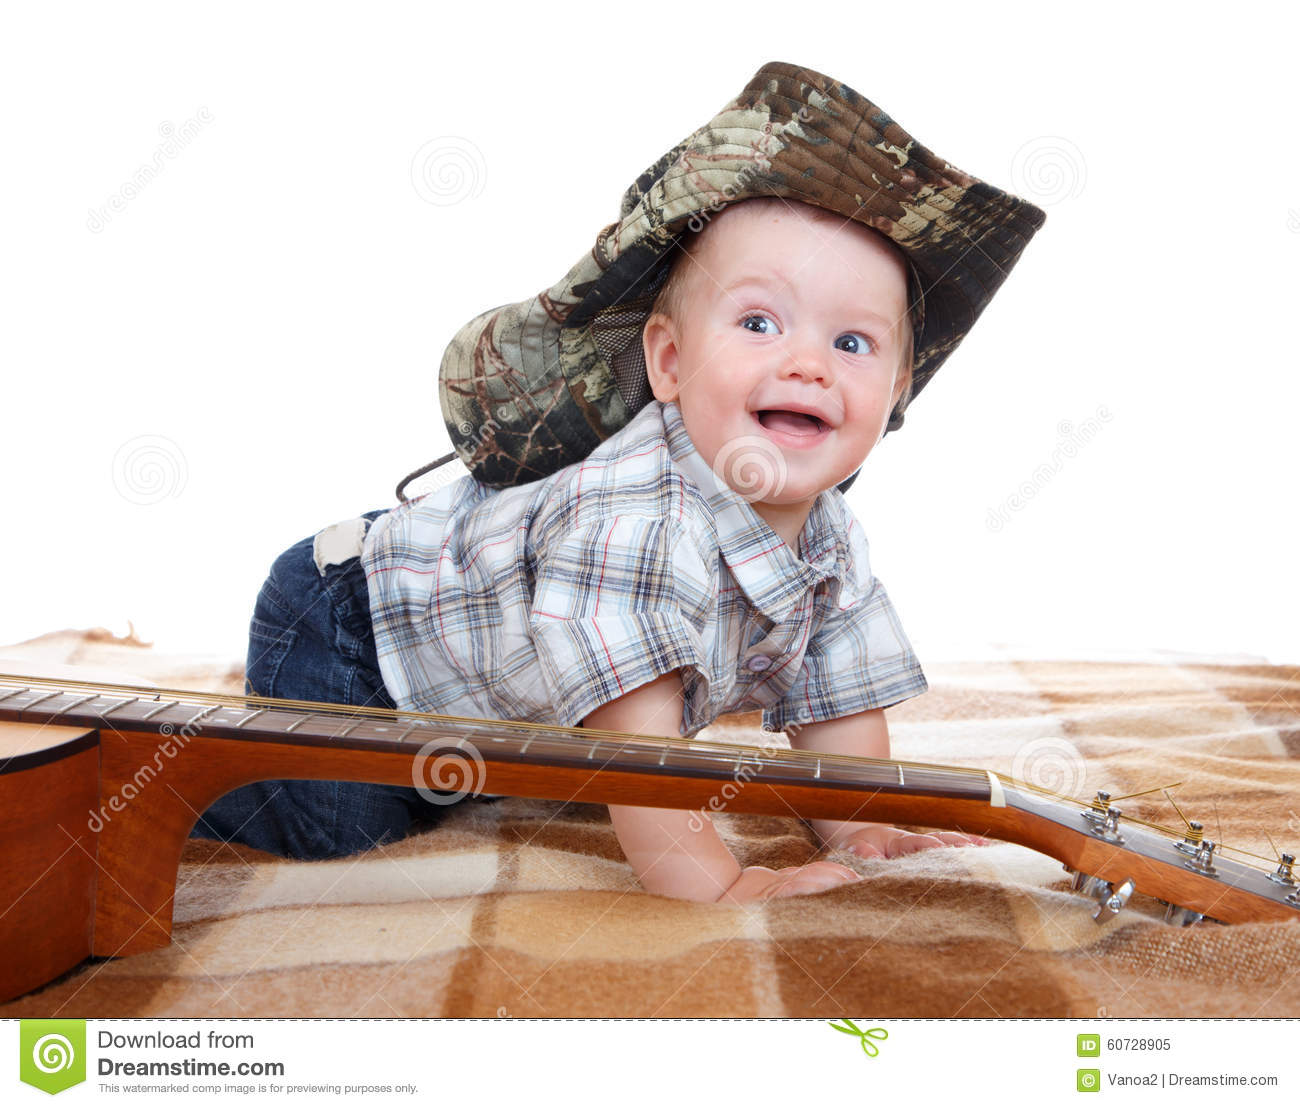 Happy Baby In Cowboy Hat And Acoustic Guitar Stock Image - Image of ... ce9ce6cdd88